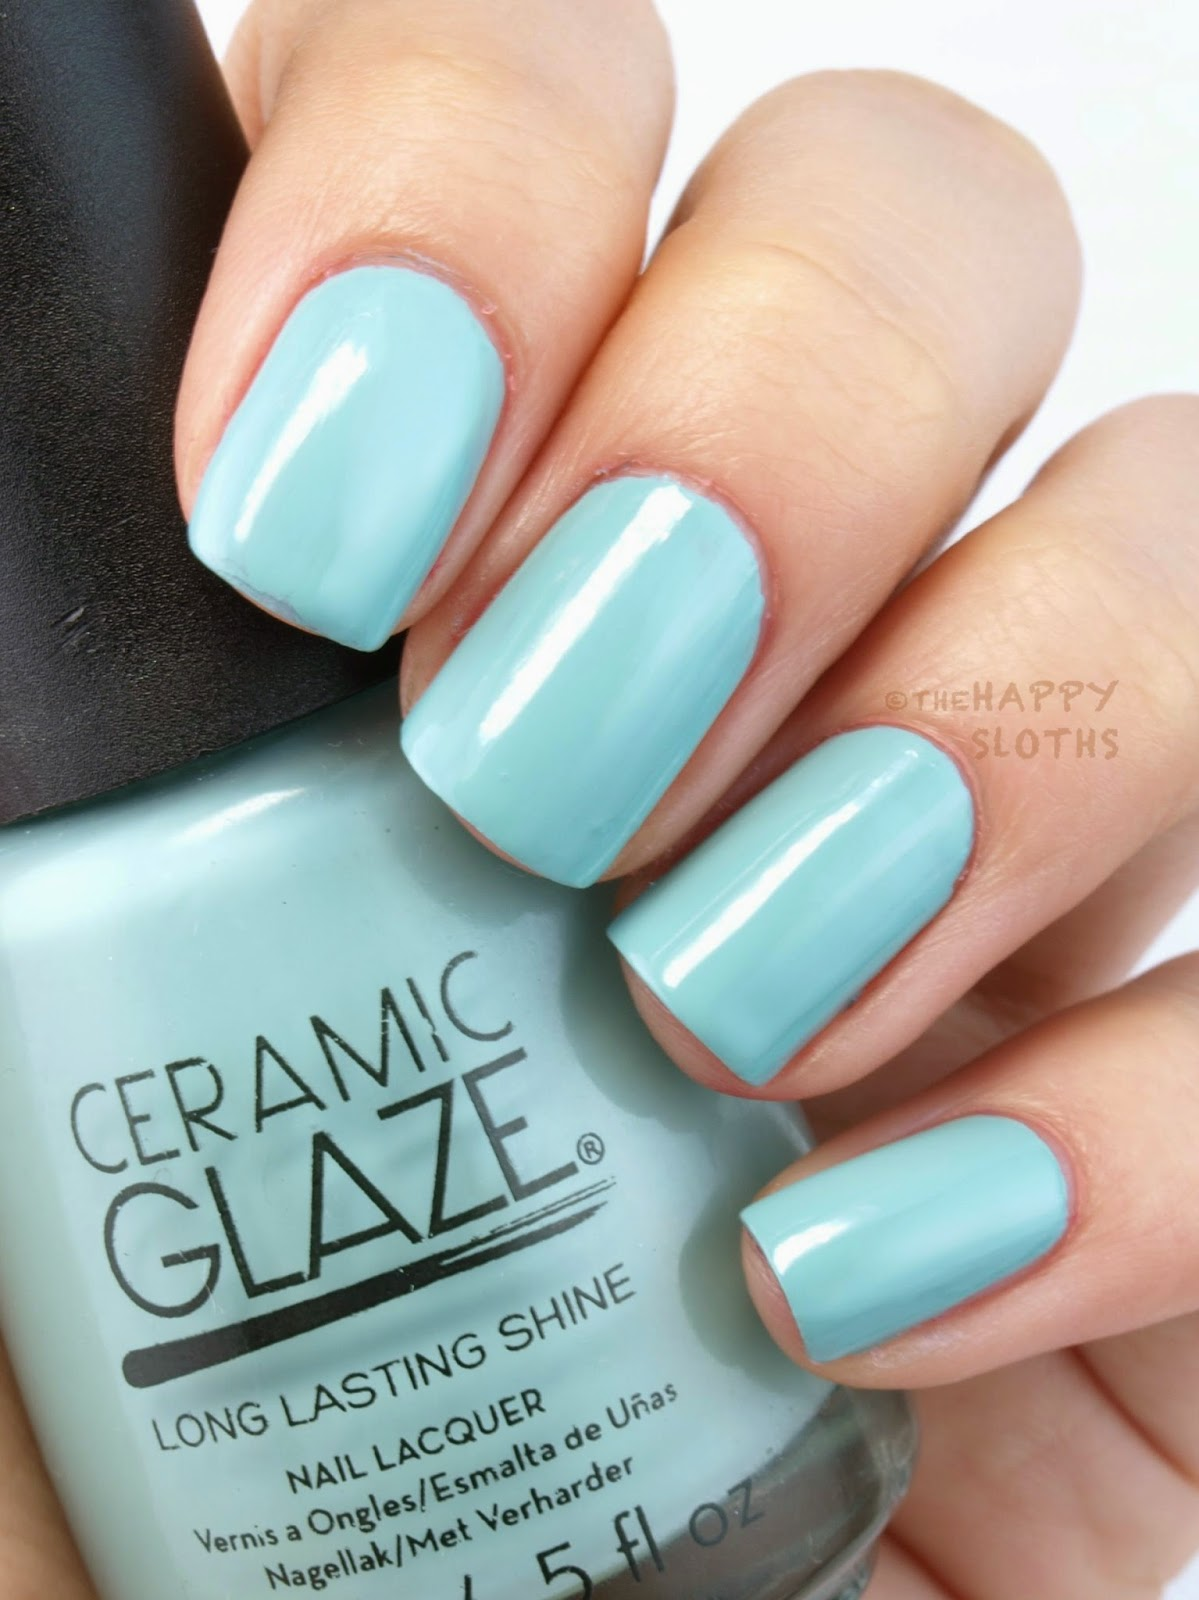 Ceramic Glaze Spring 2015 Stunning Soiree Collection: Review and Swatches